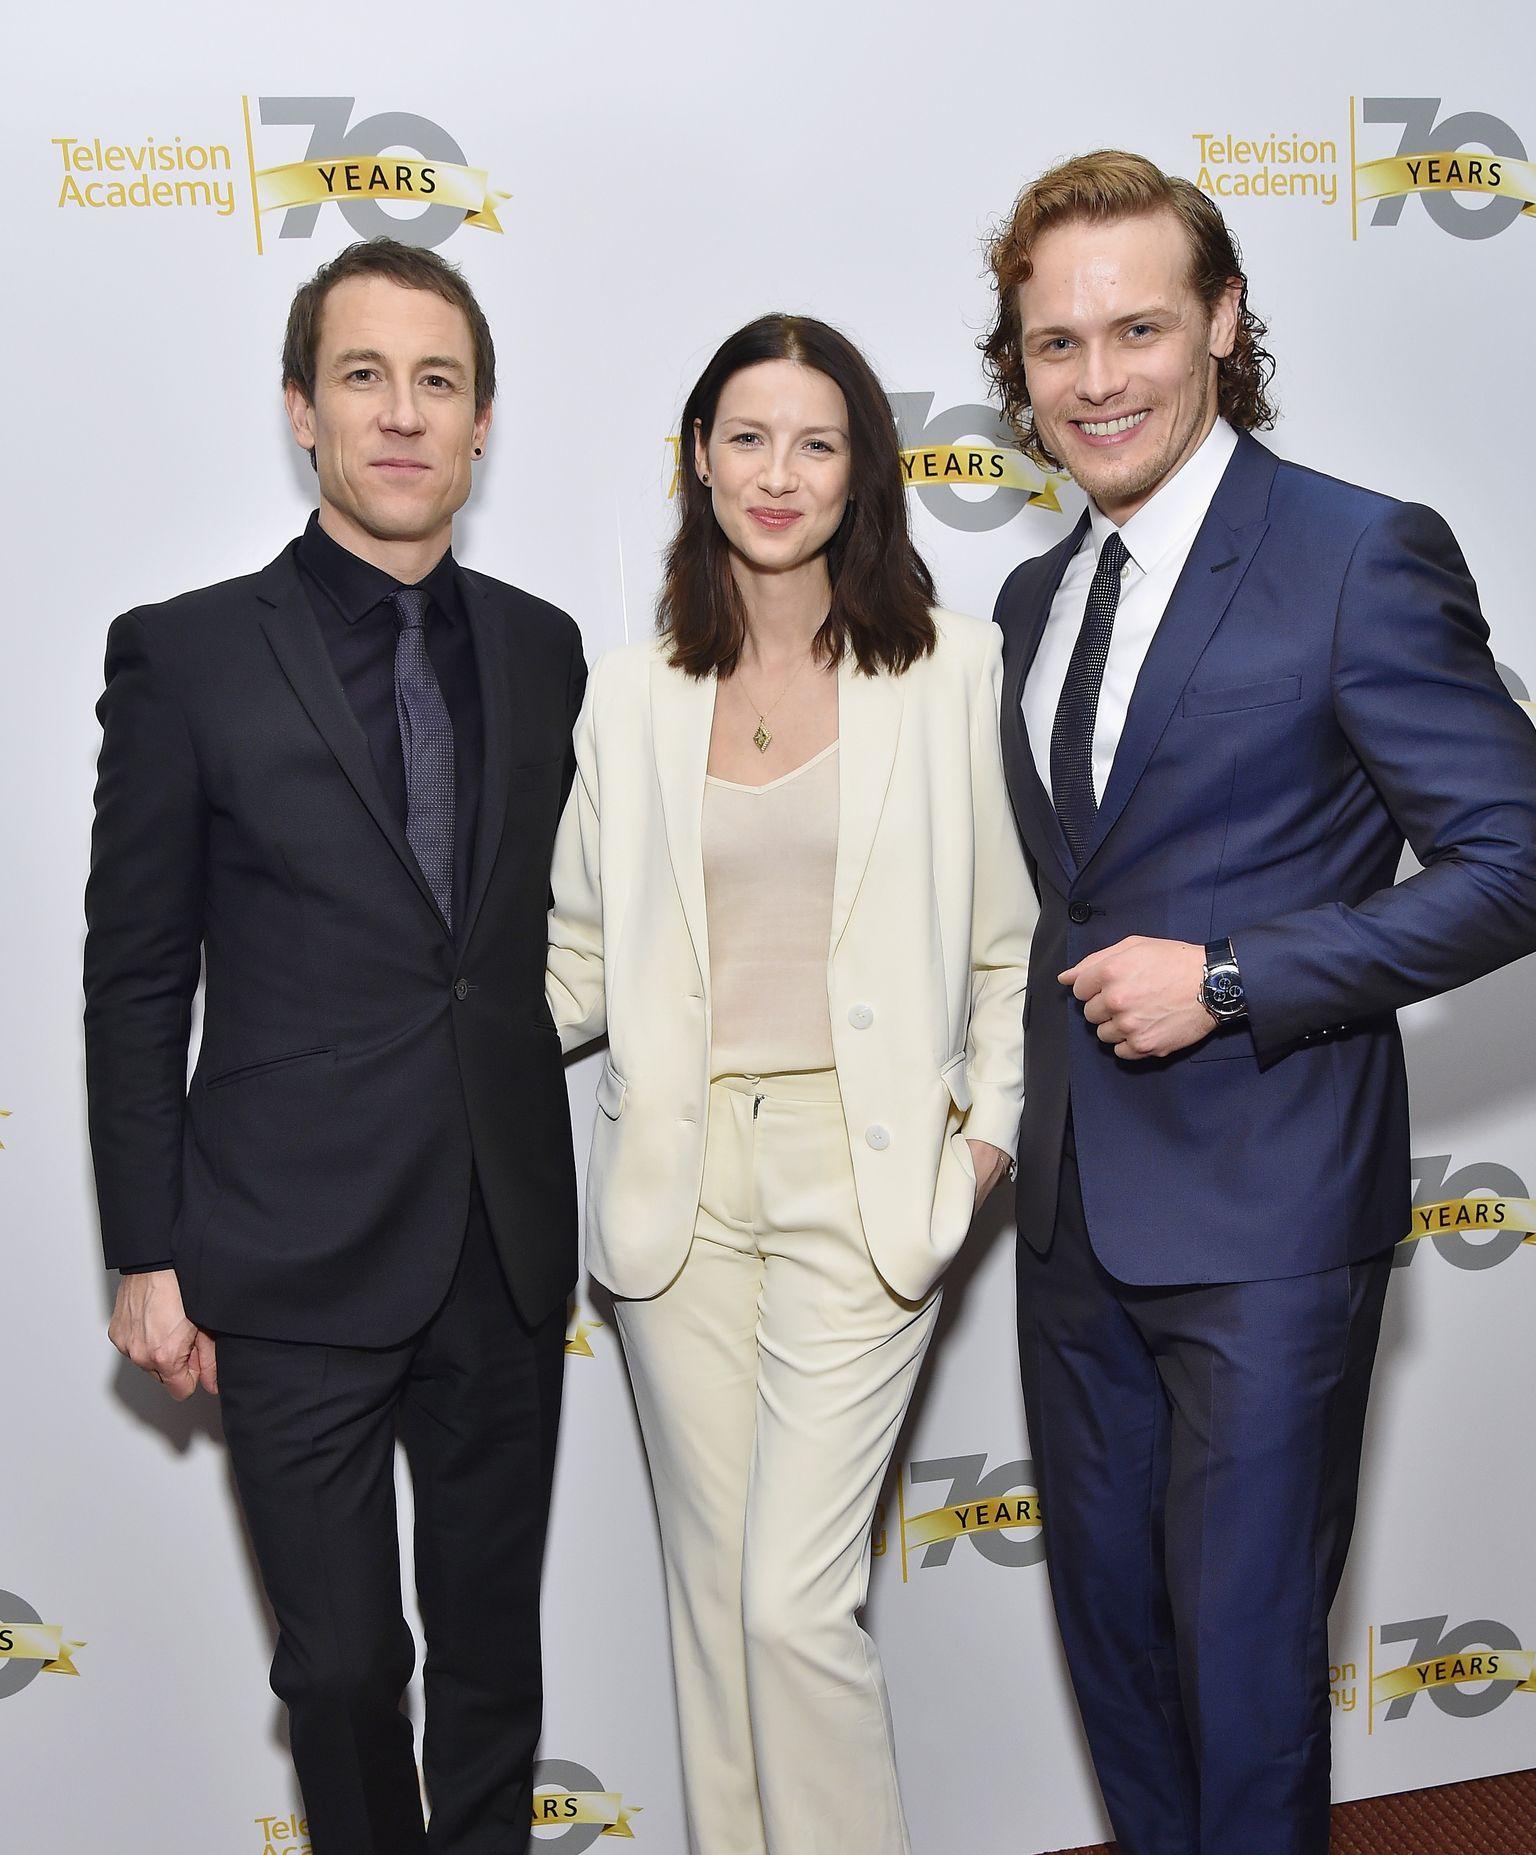 Tobias Menzies, Caitriona Balfe and Sam Heughan / Photo: Getty Images